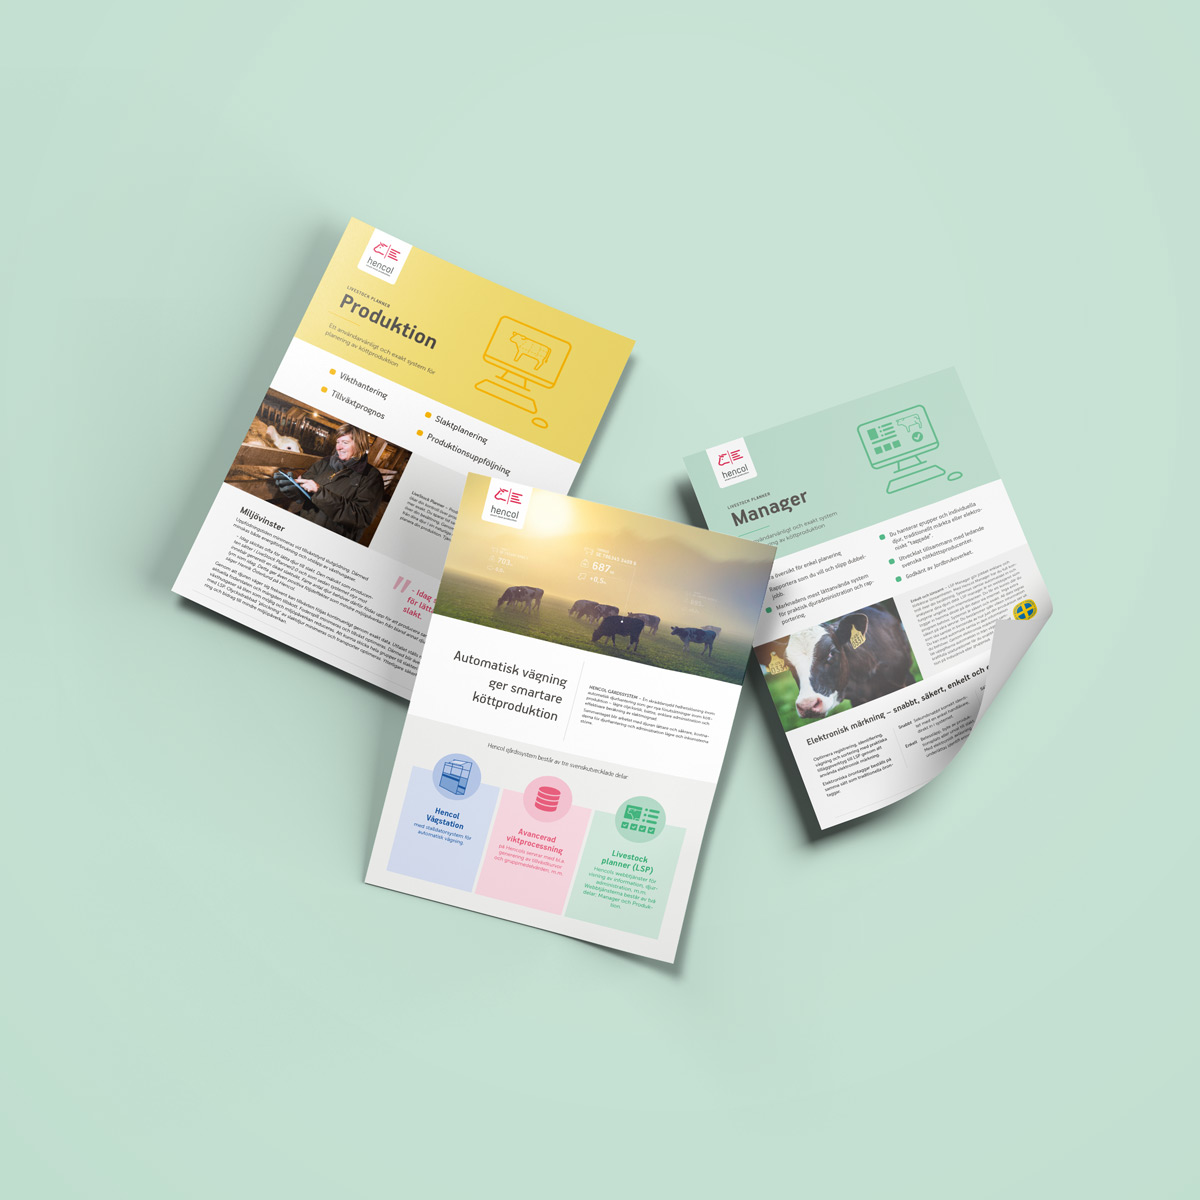 Hencol - Product Sheets